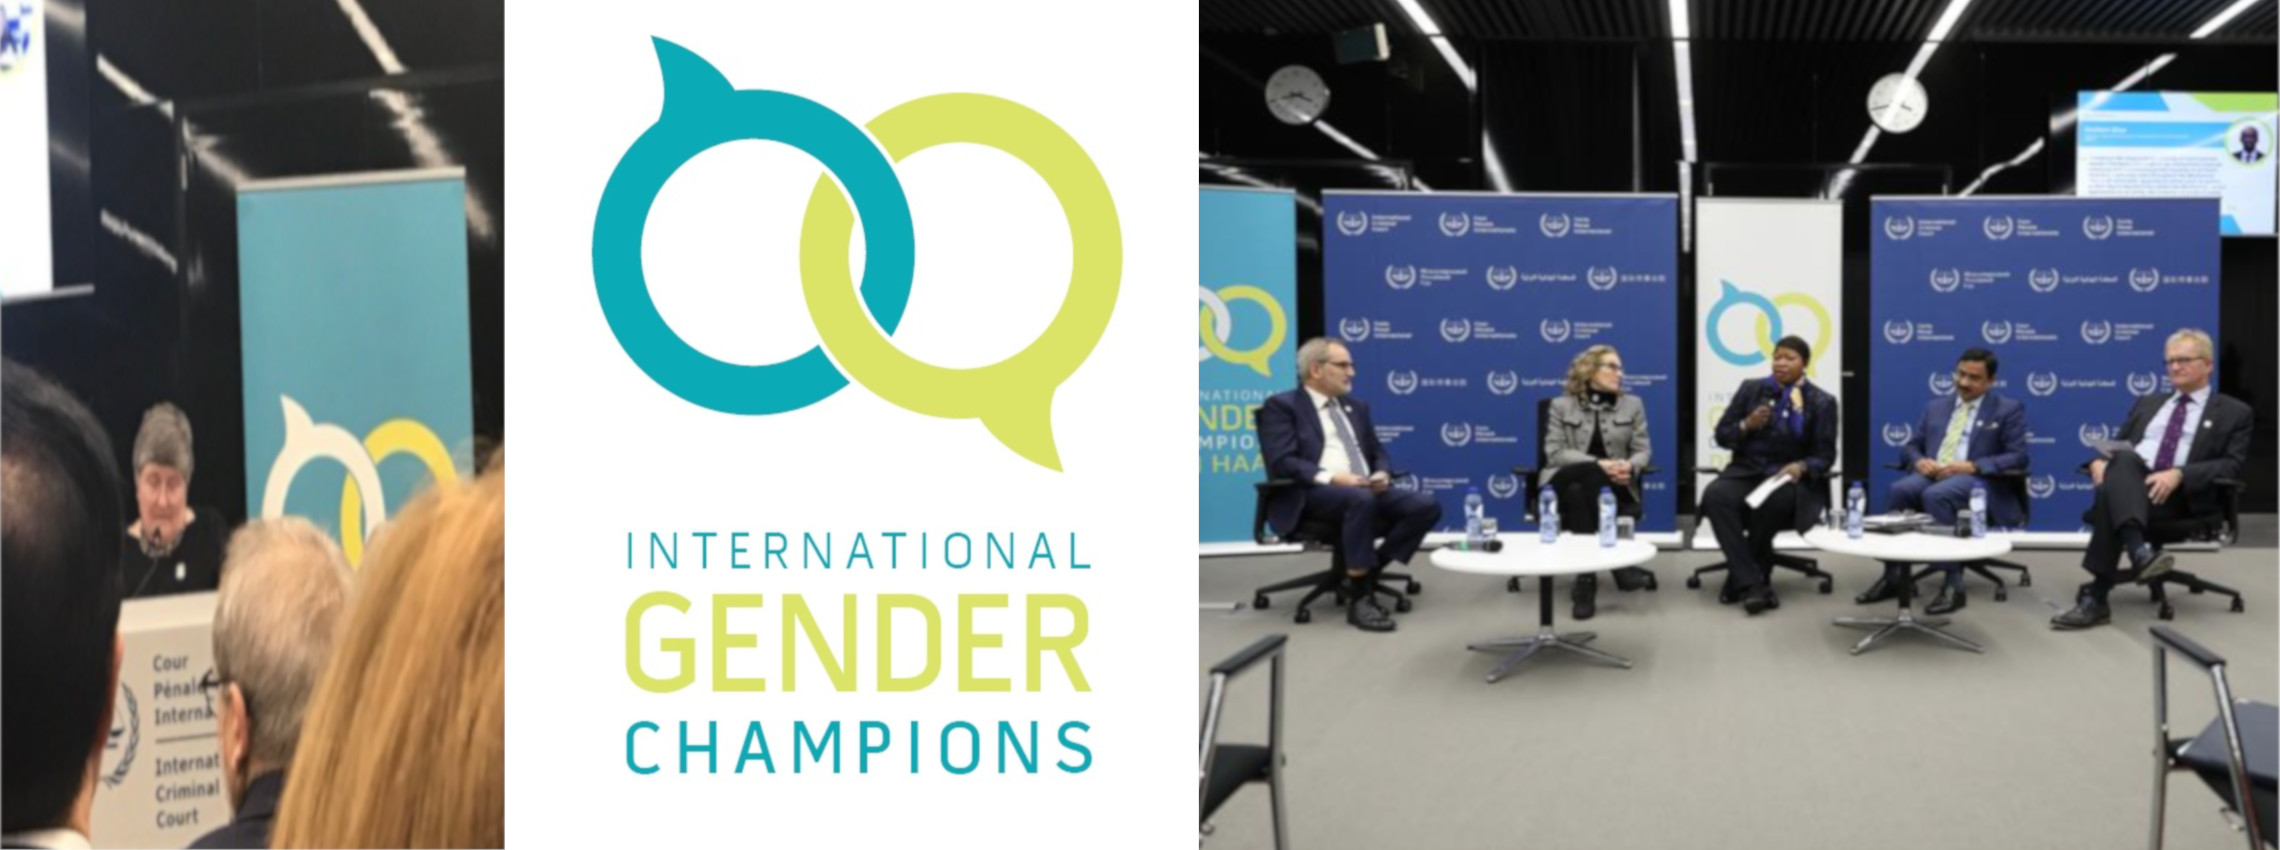 Praising-the-launch-International-Gender-Champions-The-Hague-Hub